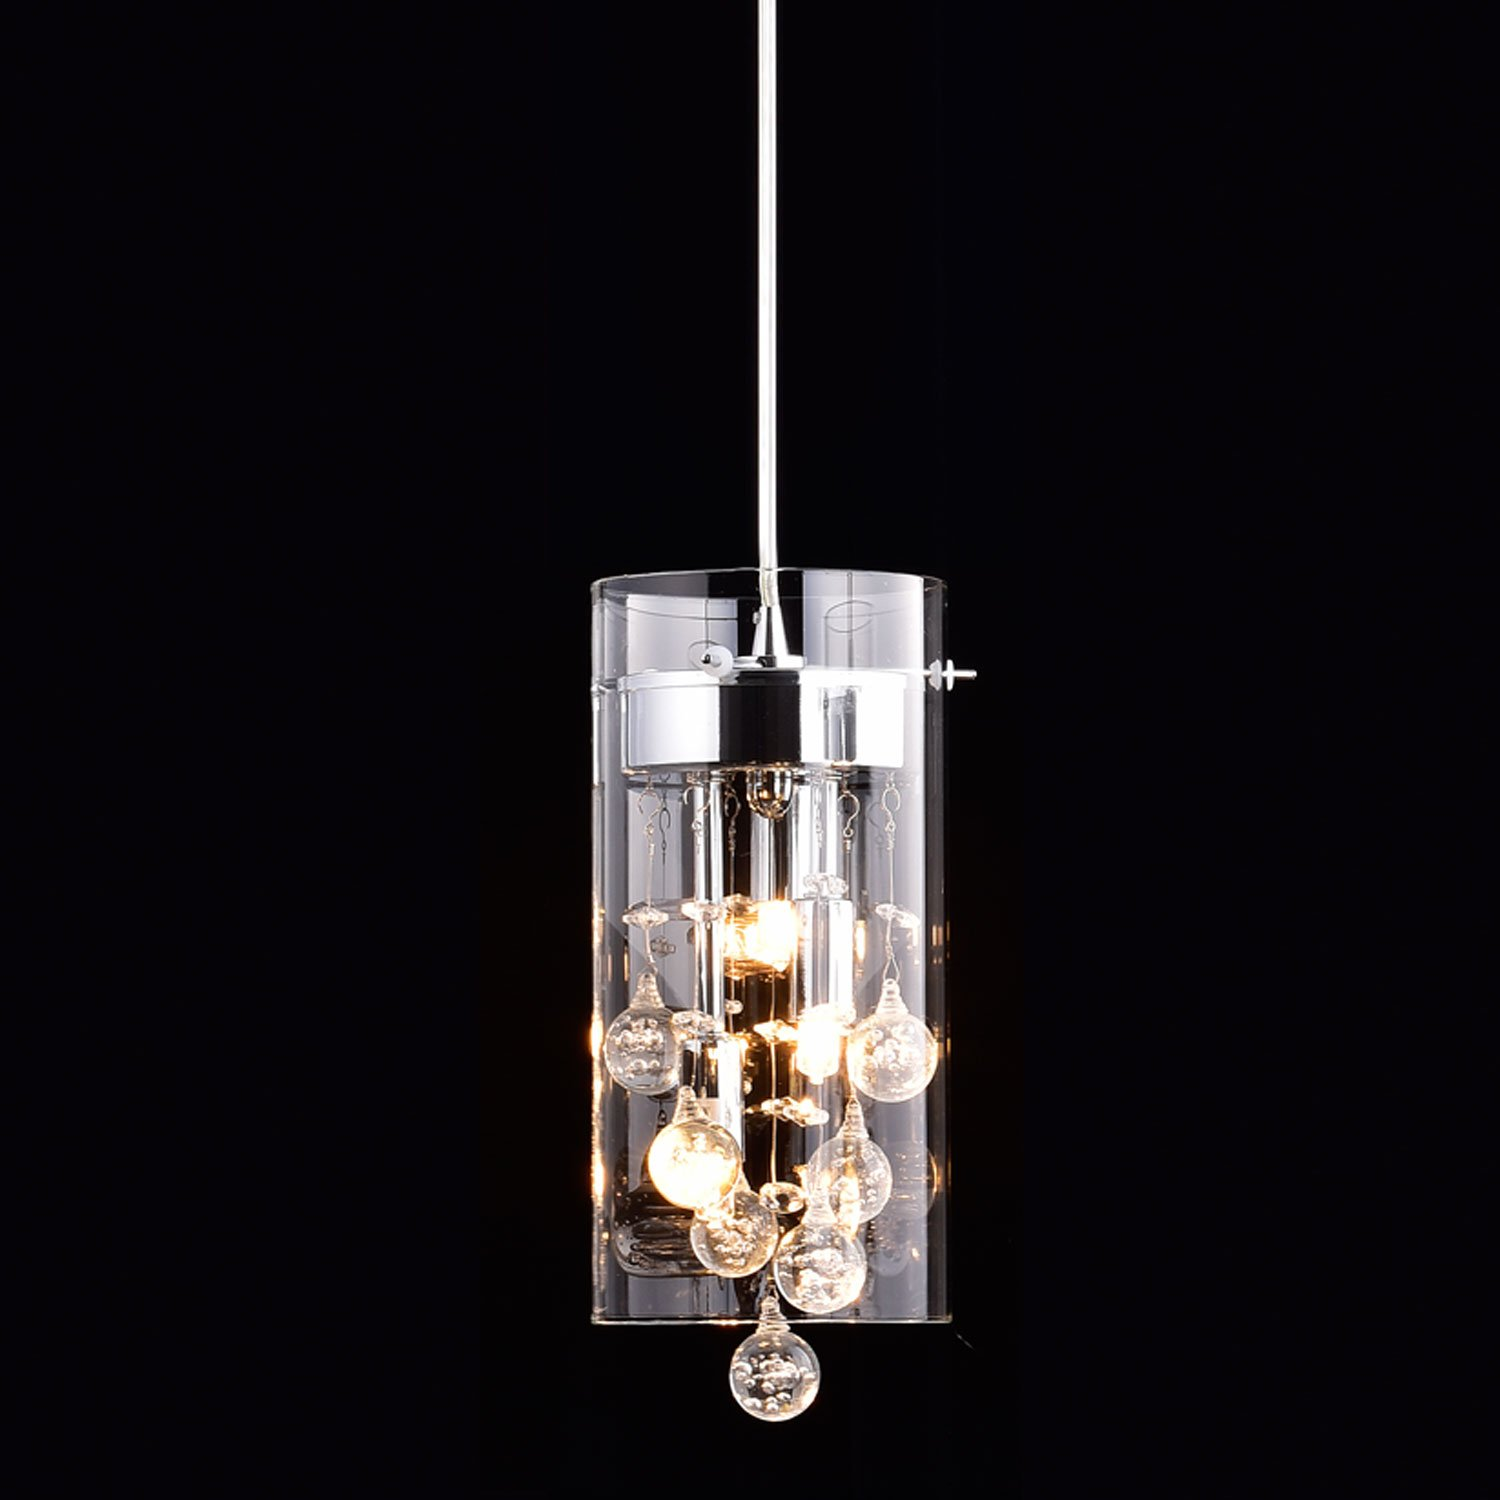 Claxy ecopower lighting glass crystal pendant lighting modern claxy ecopower lighting glass crystal pendant lighting modern chandelier for kitchen amazon aloadofball Images